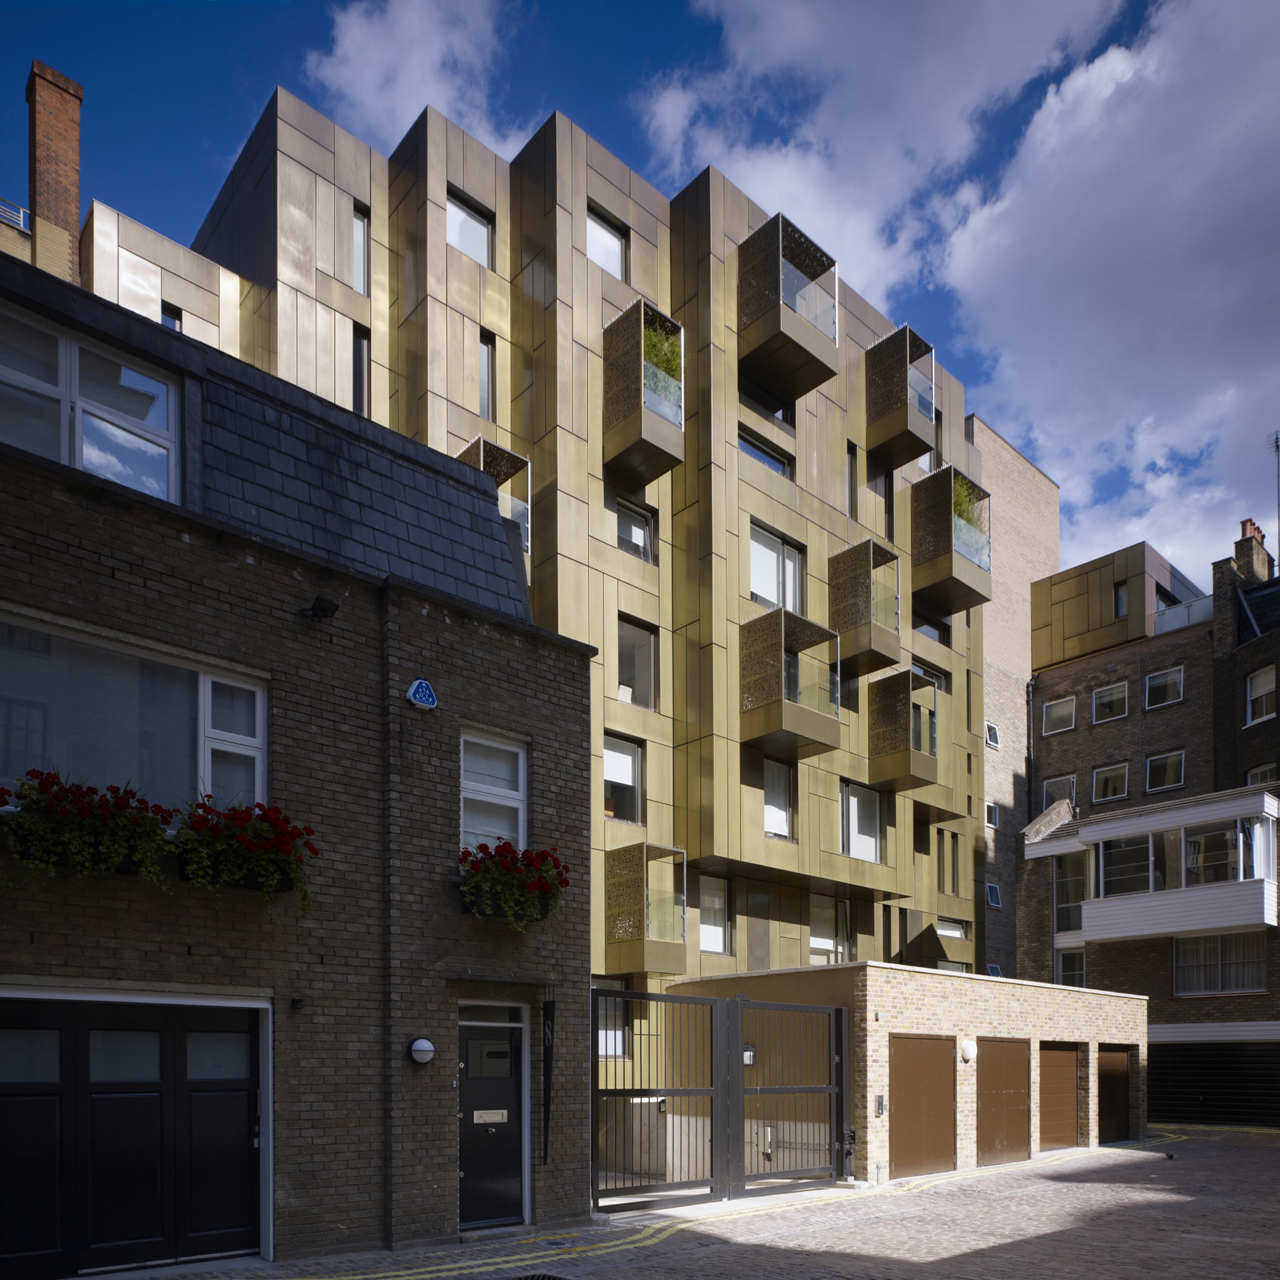 10 Weymouth Street / Make Architects, © Zander Olsen